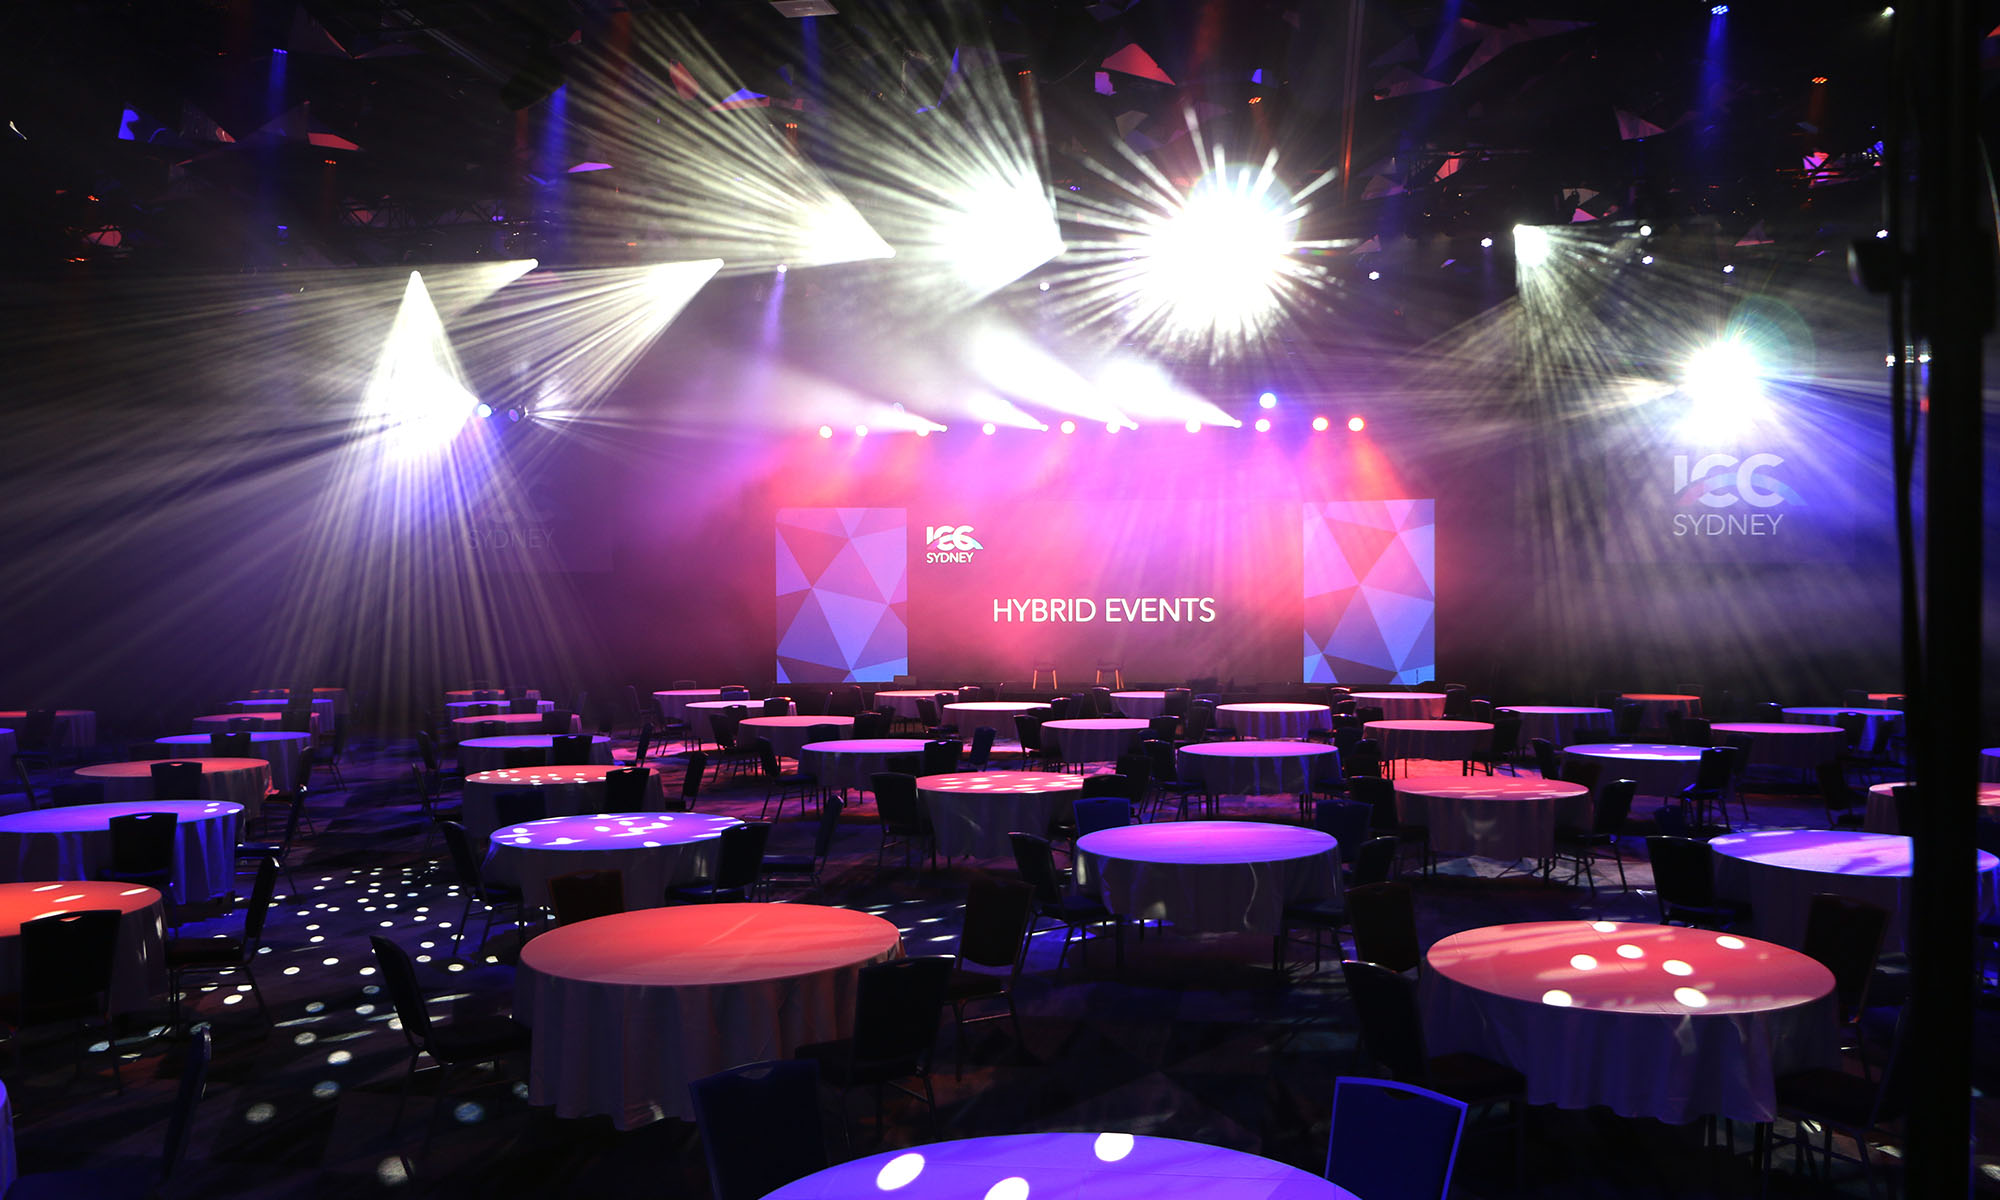 ICC Sydney extends hybrid event solutions